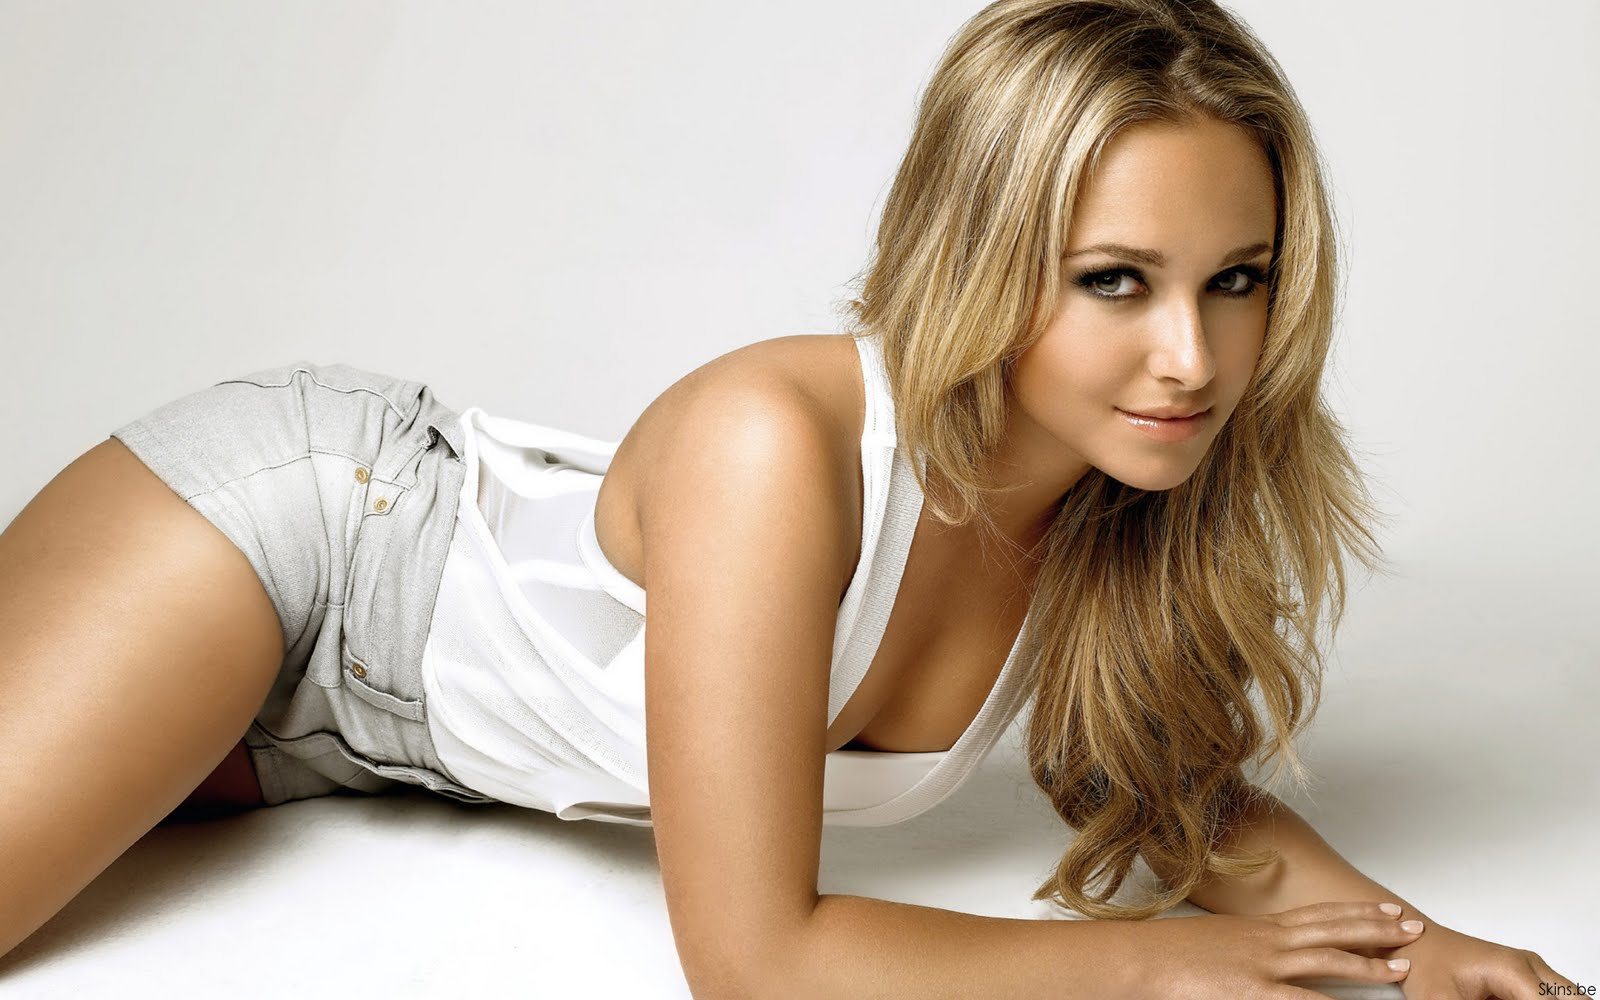 hayden panettiere height